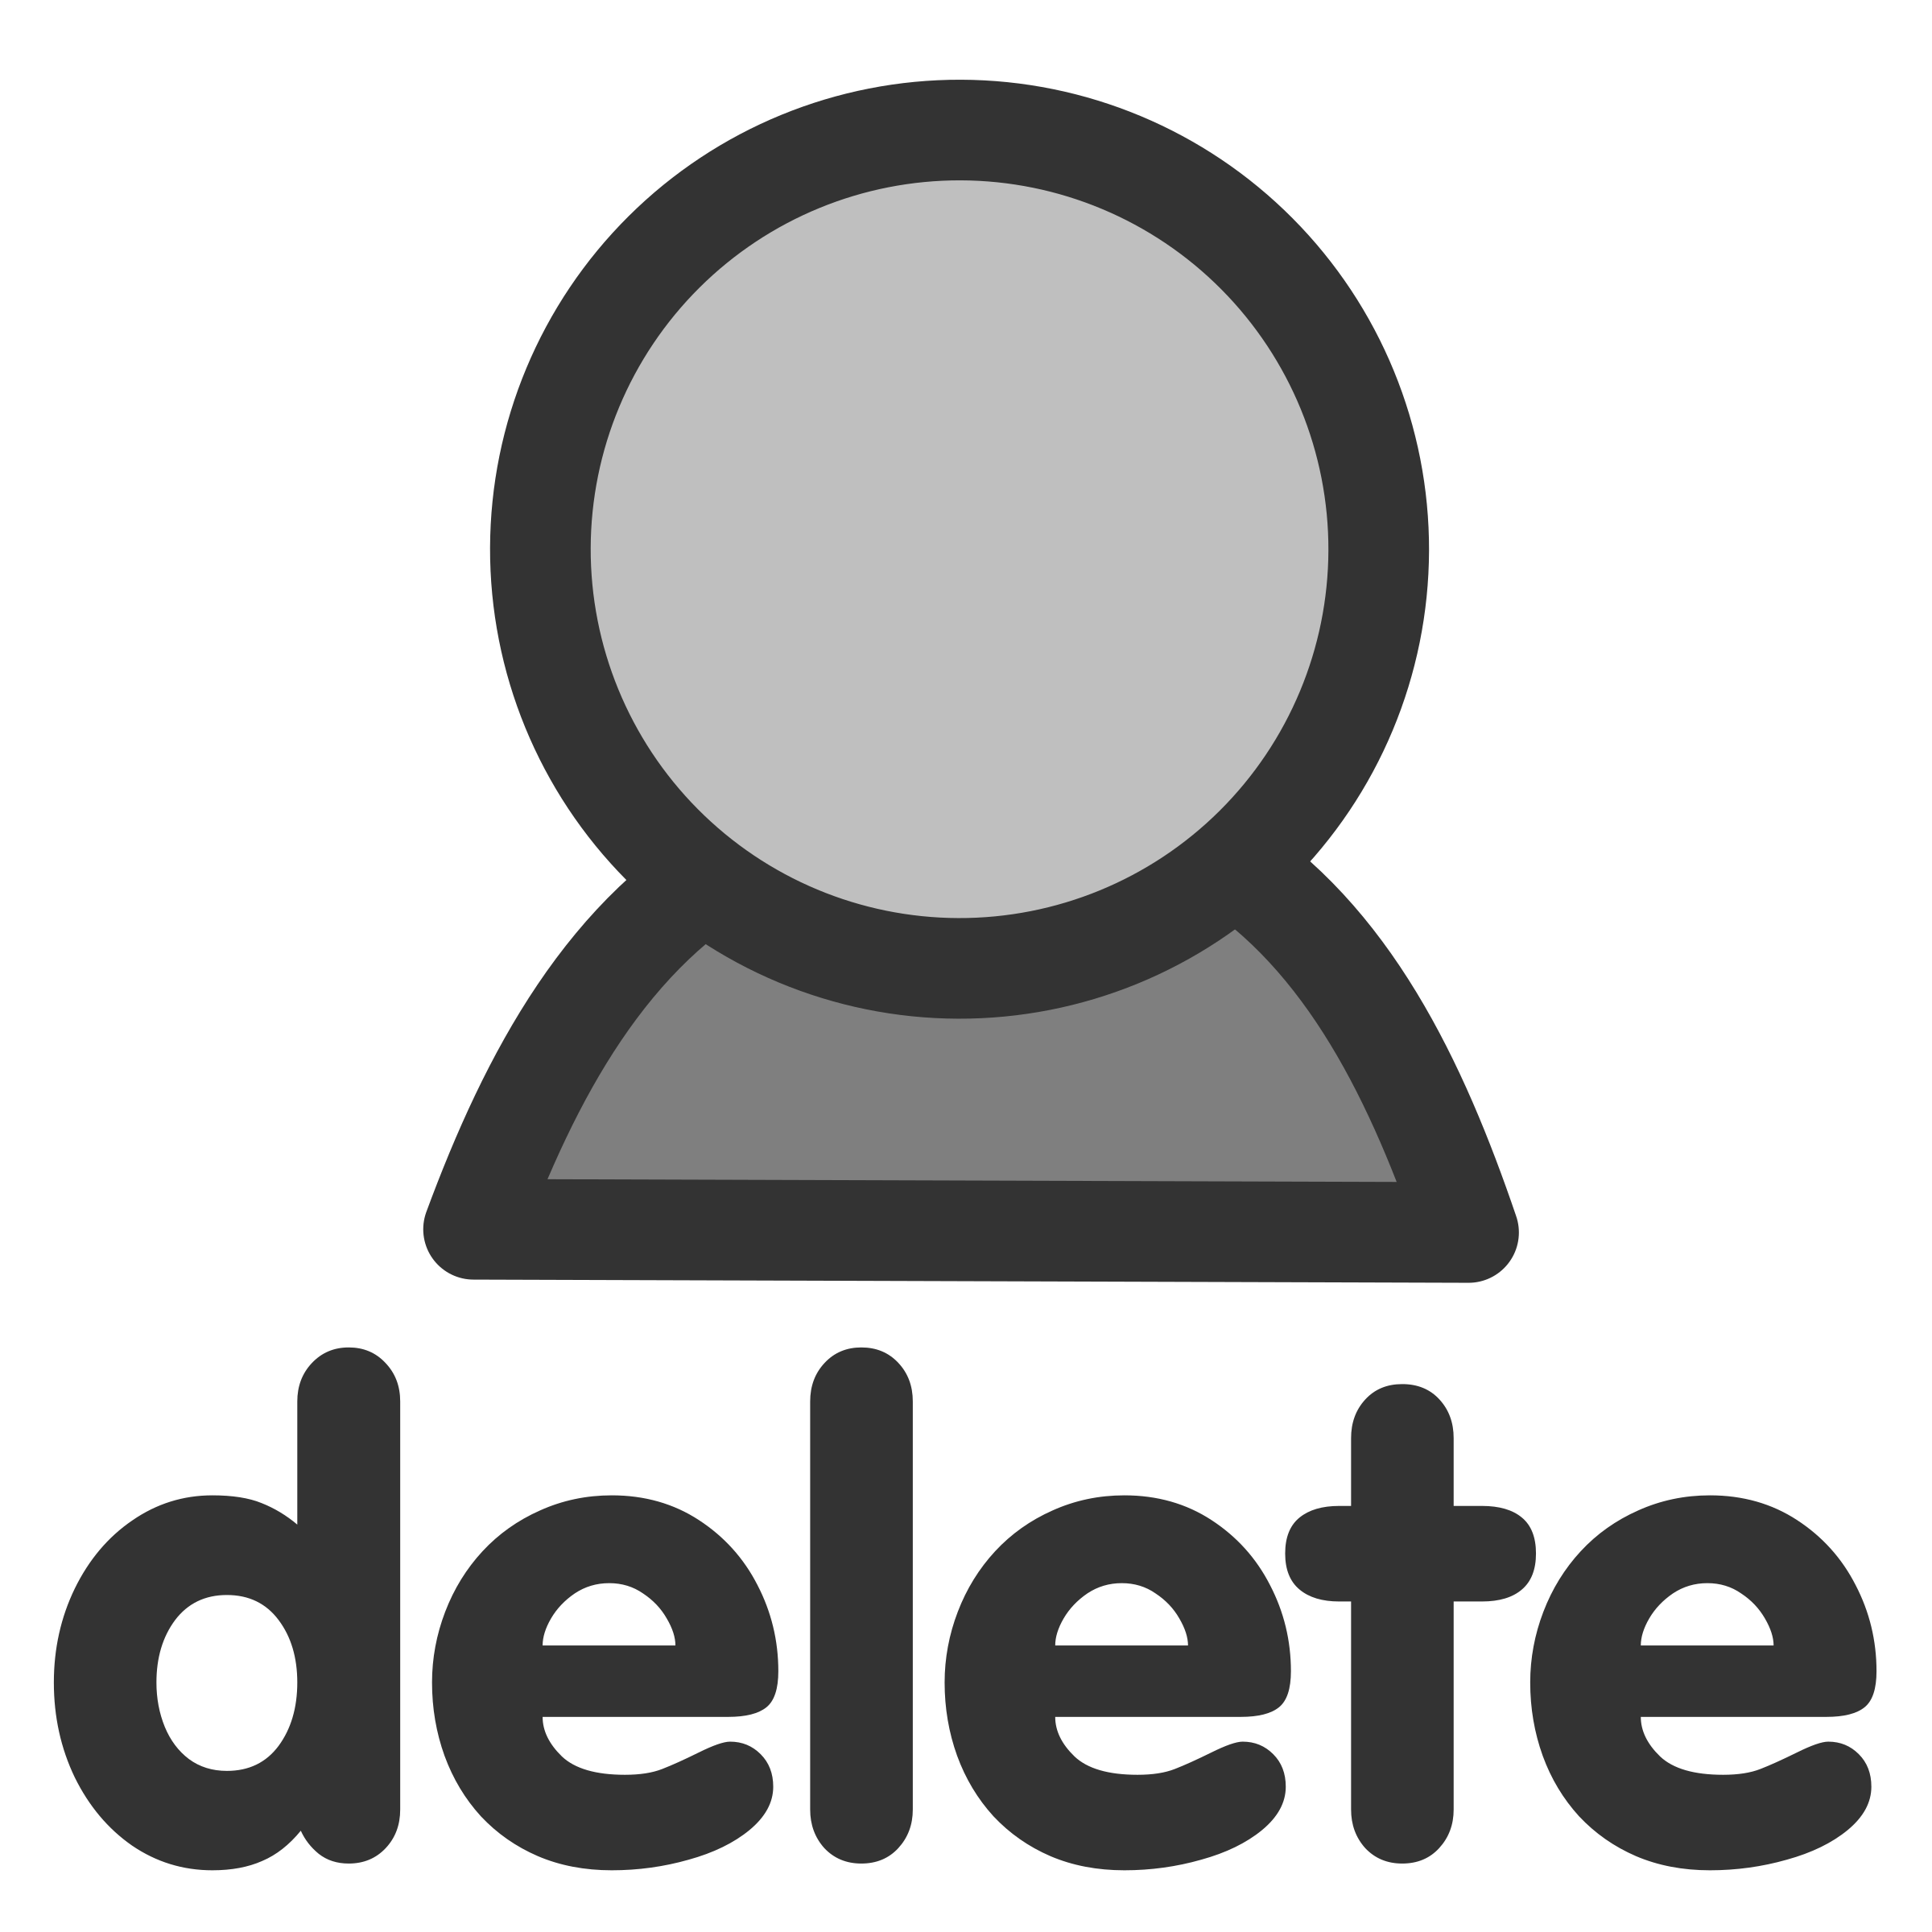 ftdelete user by dannya